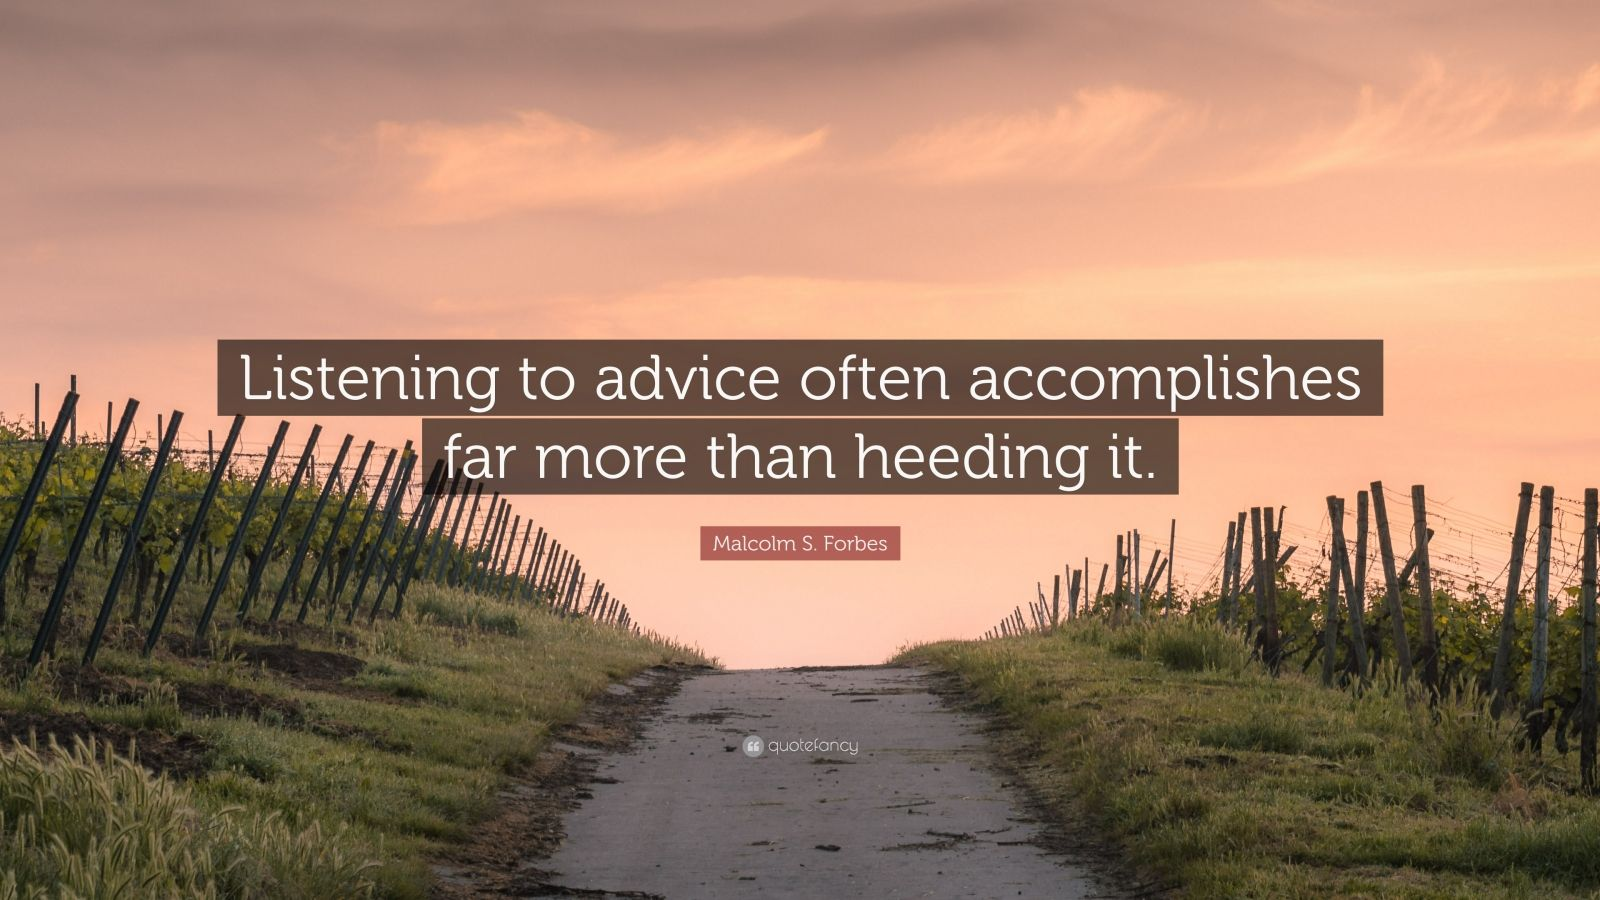 """Malcolm S. Forbes Quote: """"Listening to advice often accomplishes far more than heeding it."""""""